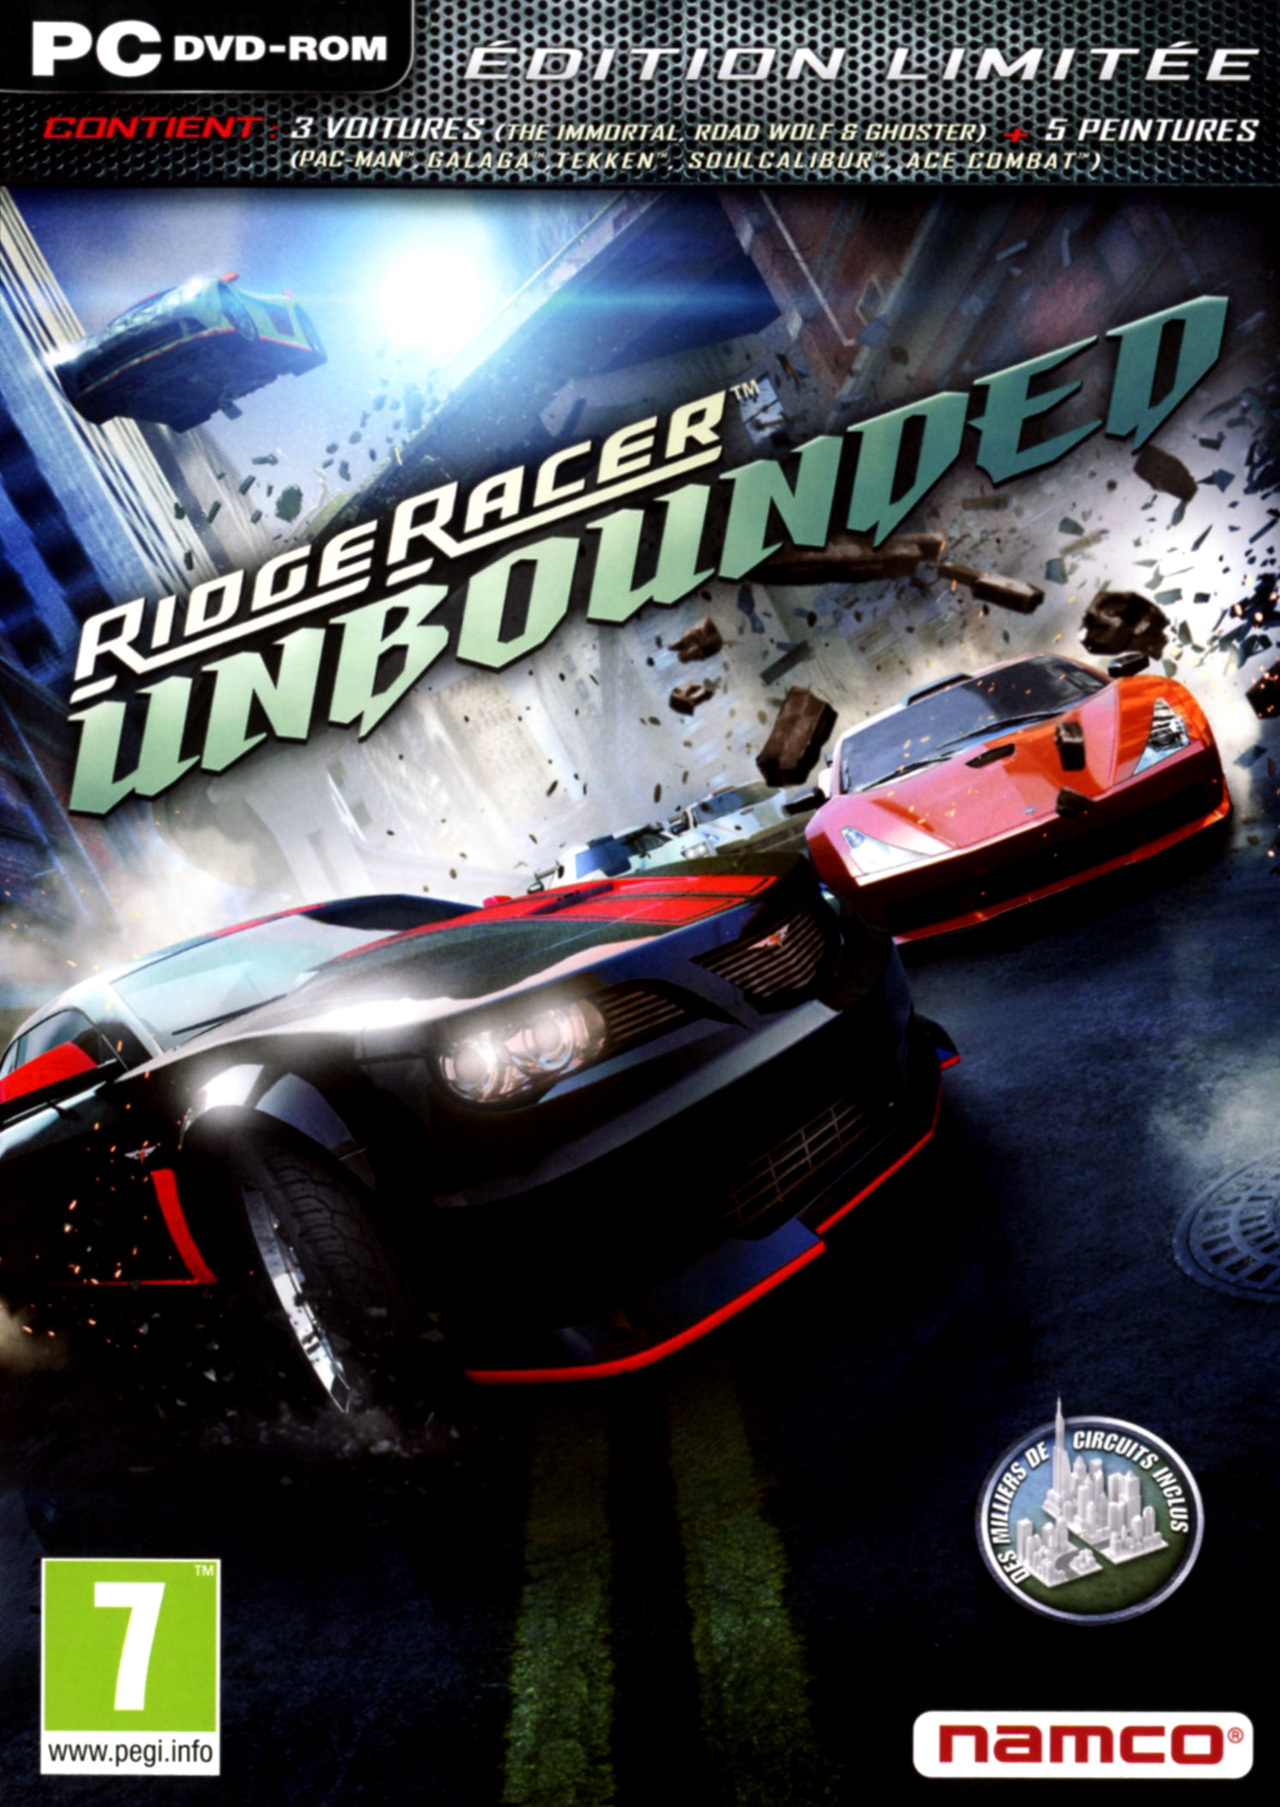 Ridge Racer Unbounded [MULTI] [PC]  (exclue)